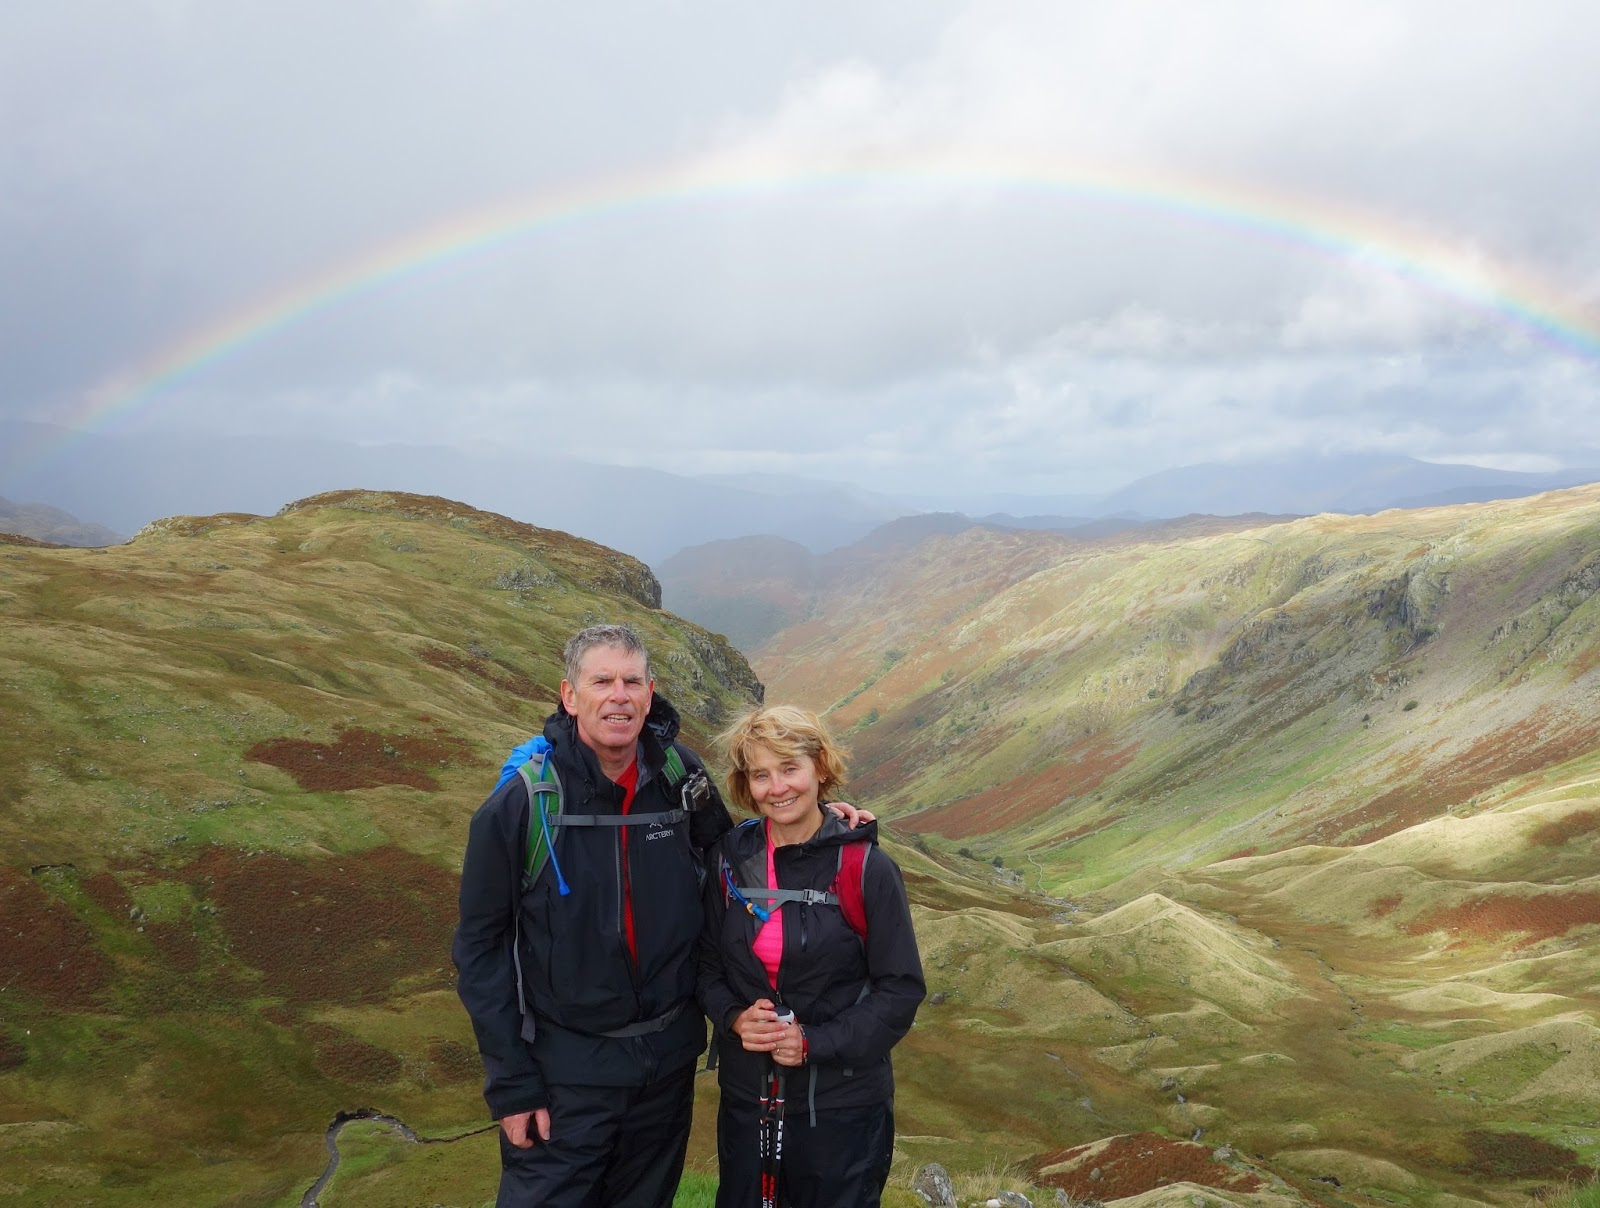 Gail and John Hanlon below a rainbow hiking in the Borrowdale Valley